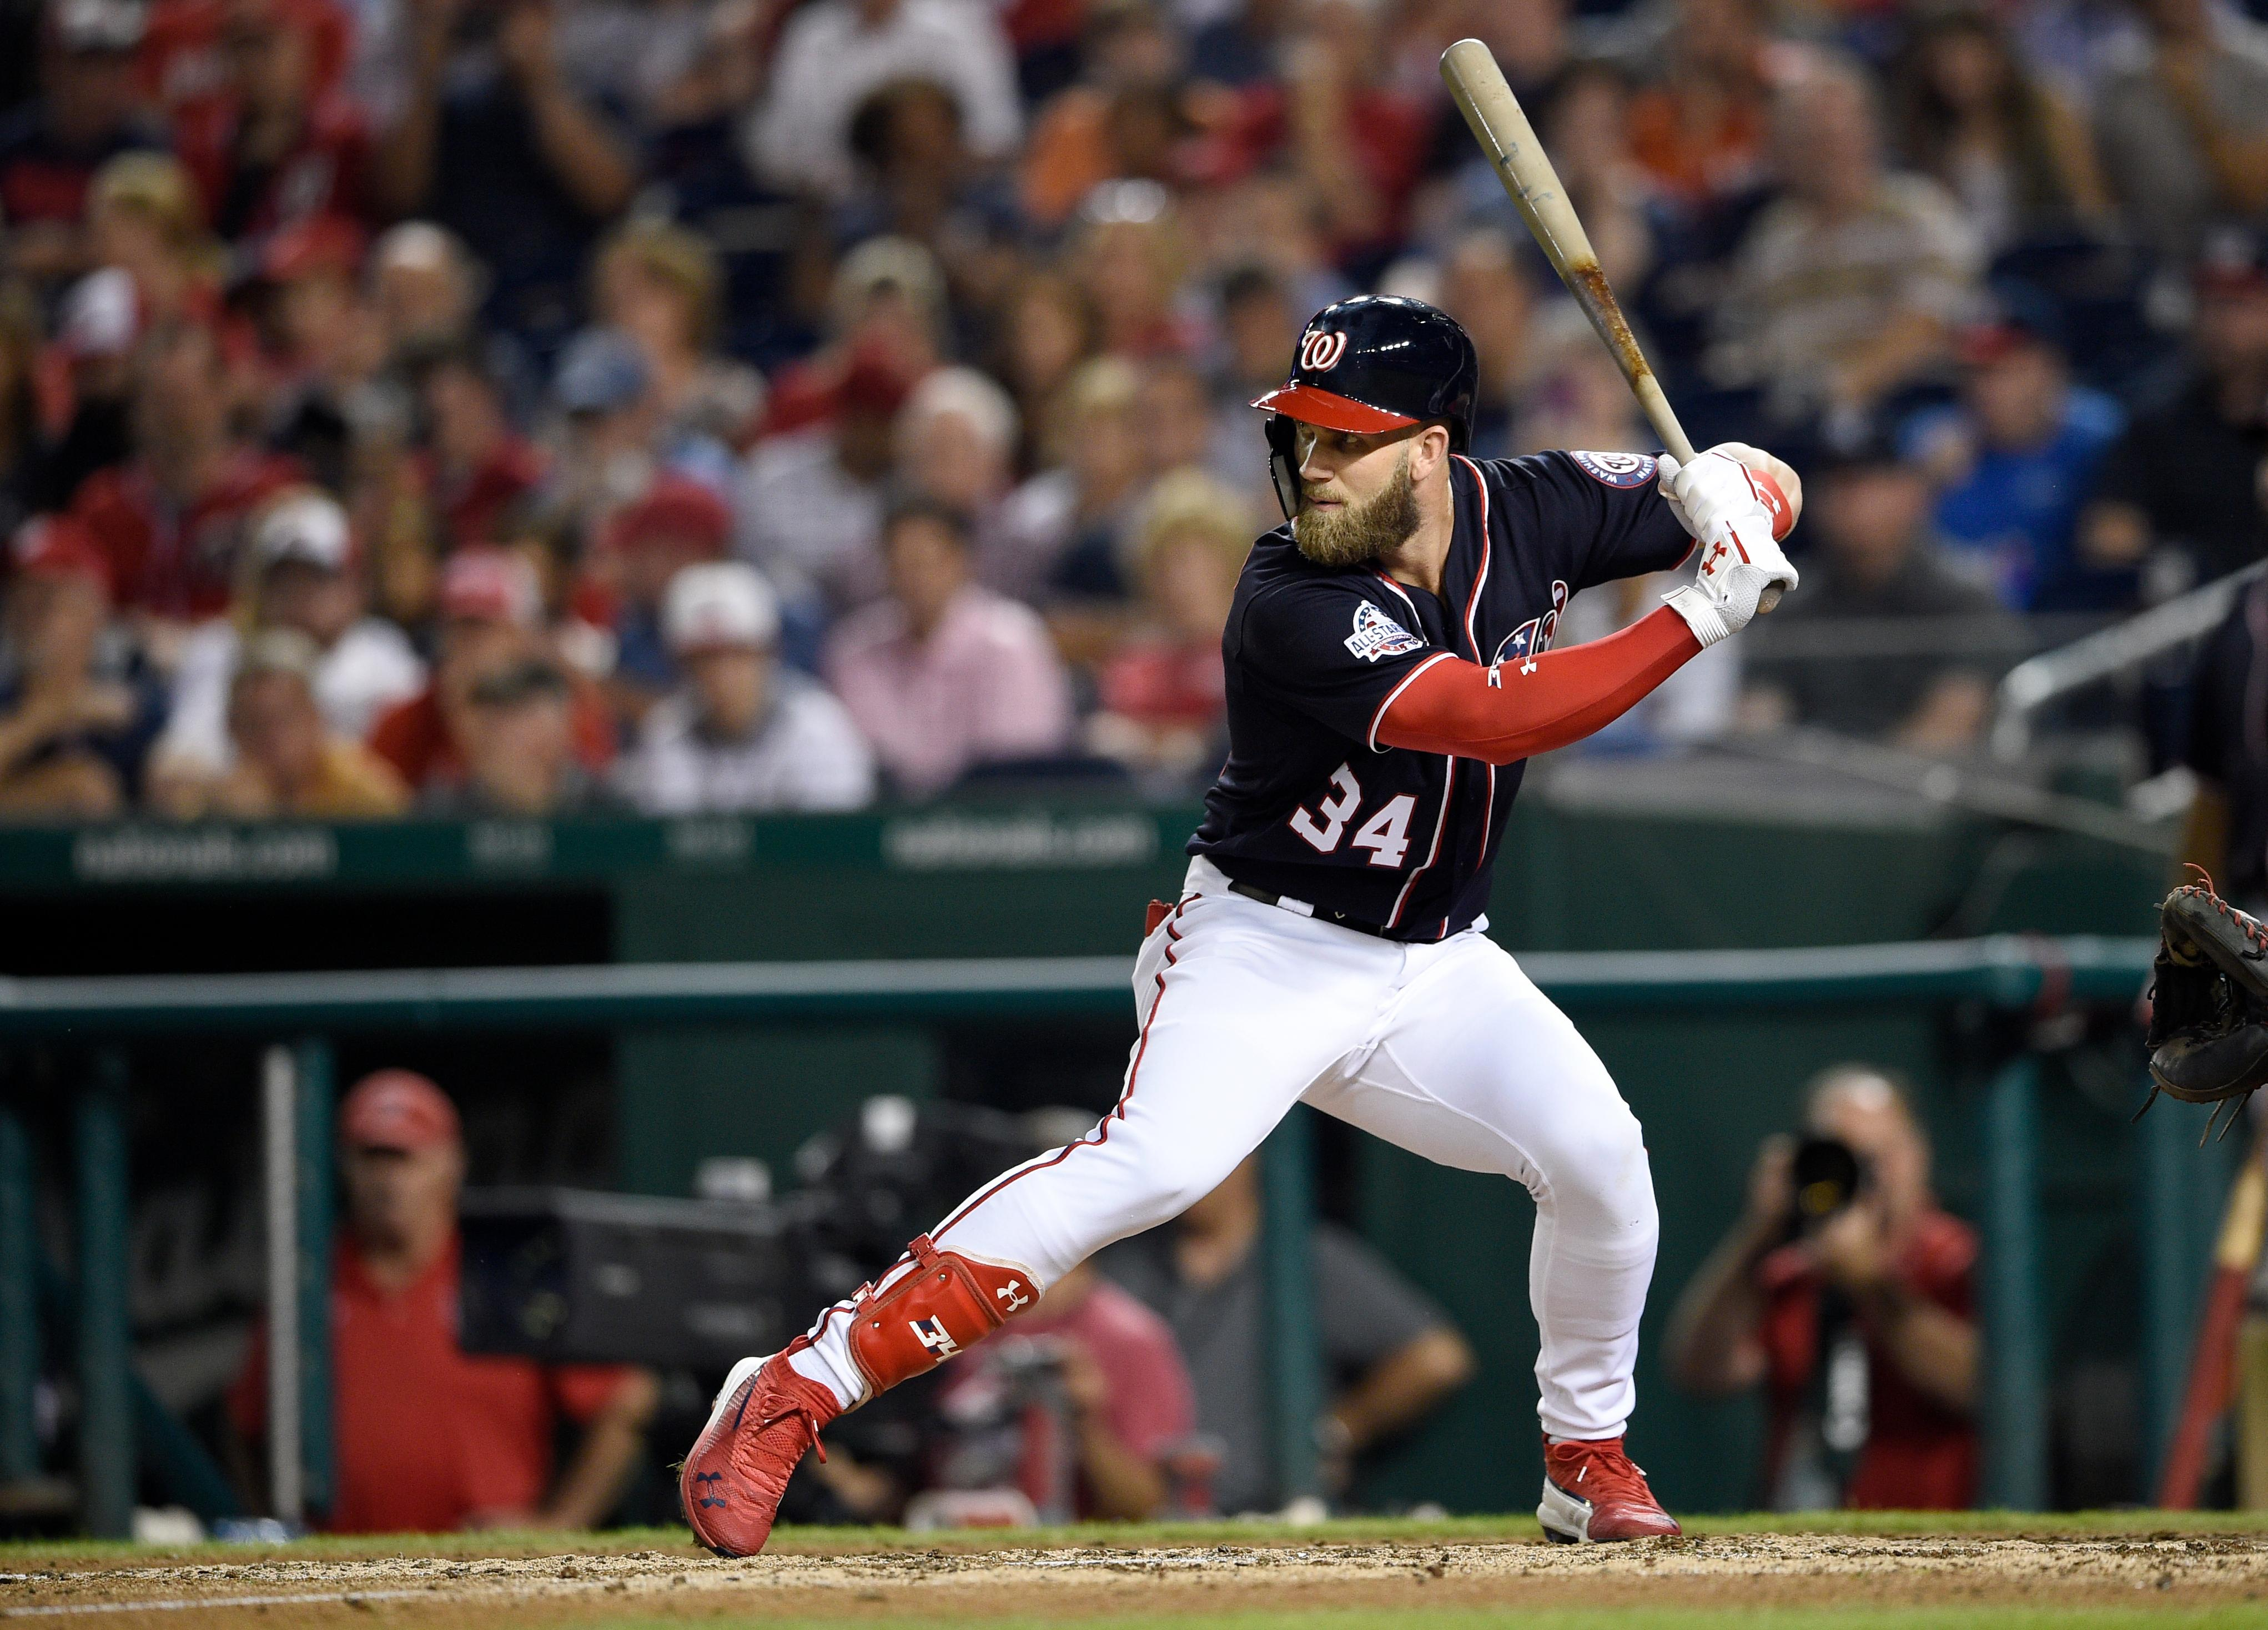 Washington Nationals' Bryce Harper bats during a baseball game against the New York Mets, Friday, Sept. 21, 2018, in Washington. (AP Photo/Nick Wass)